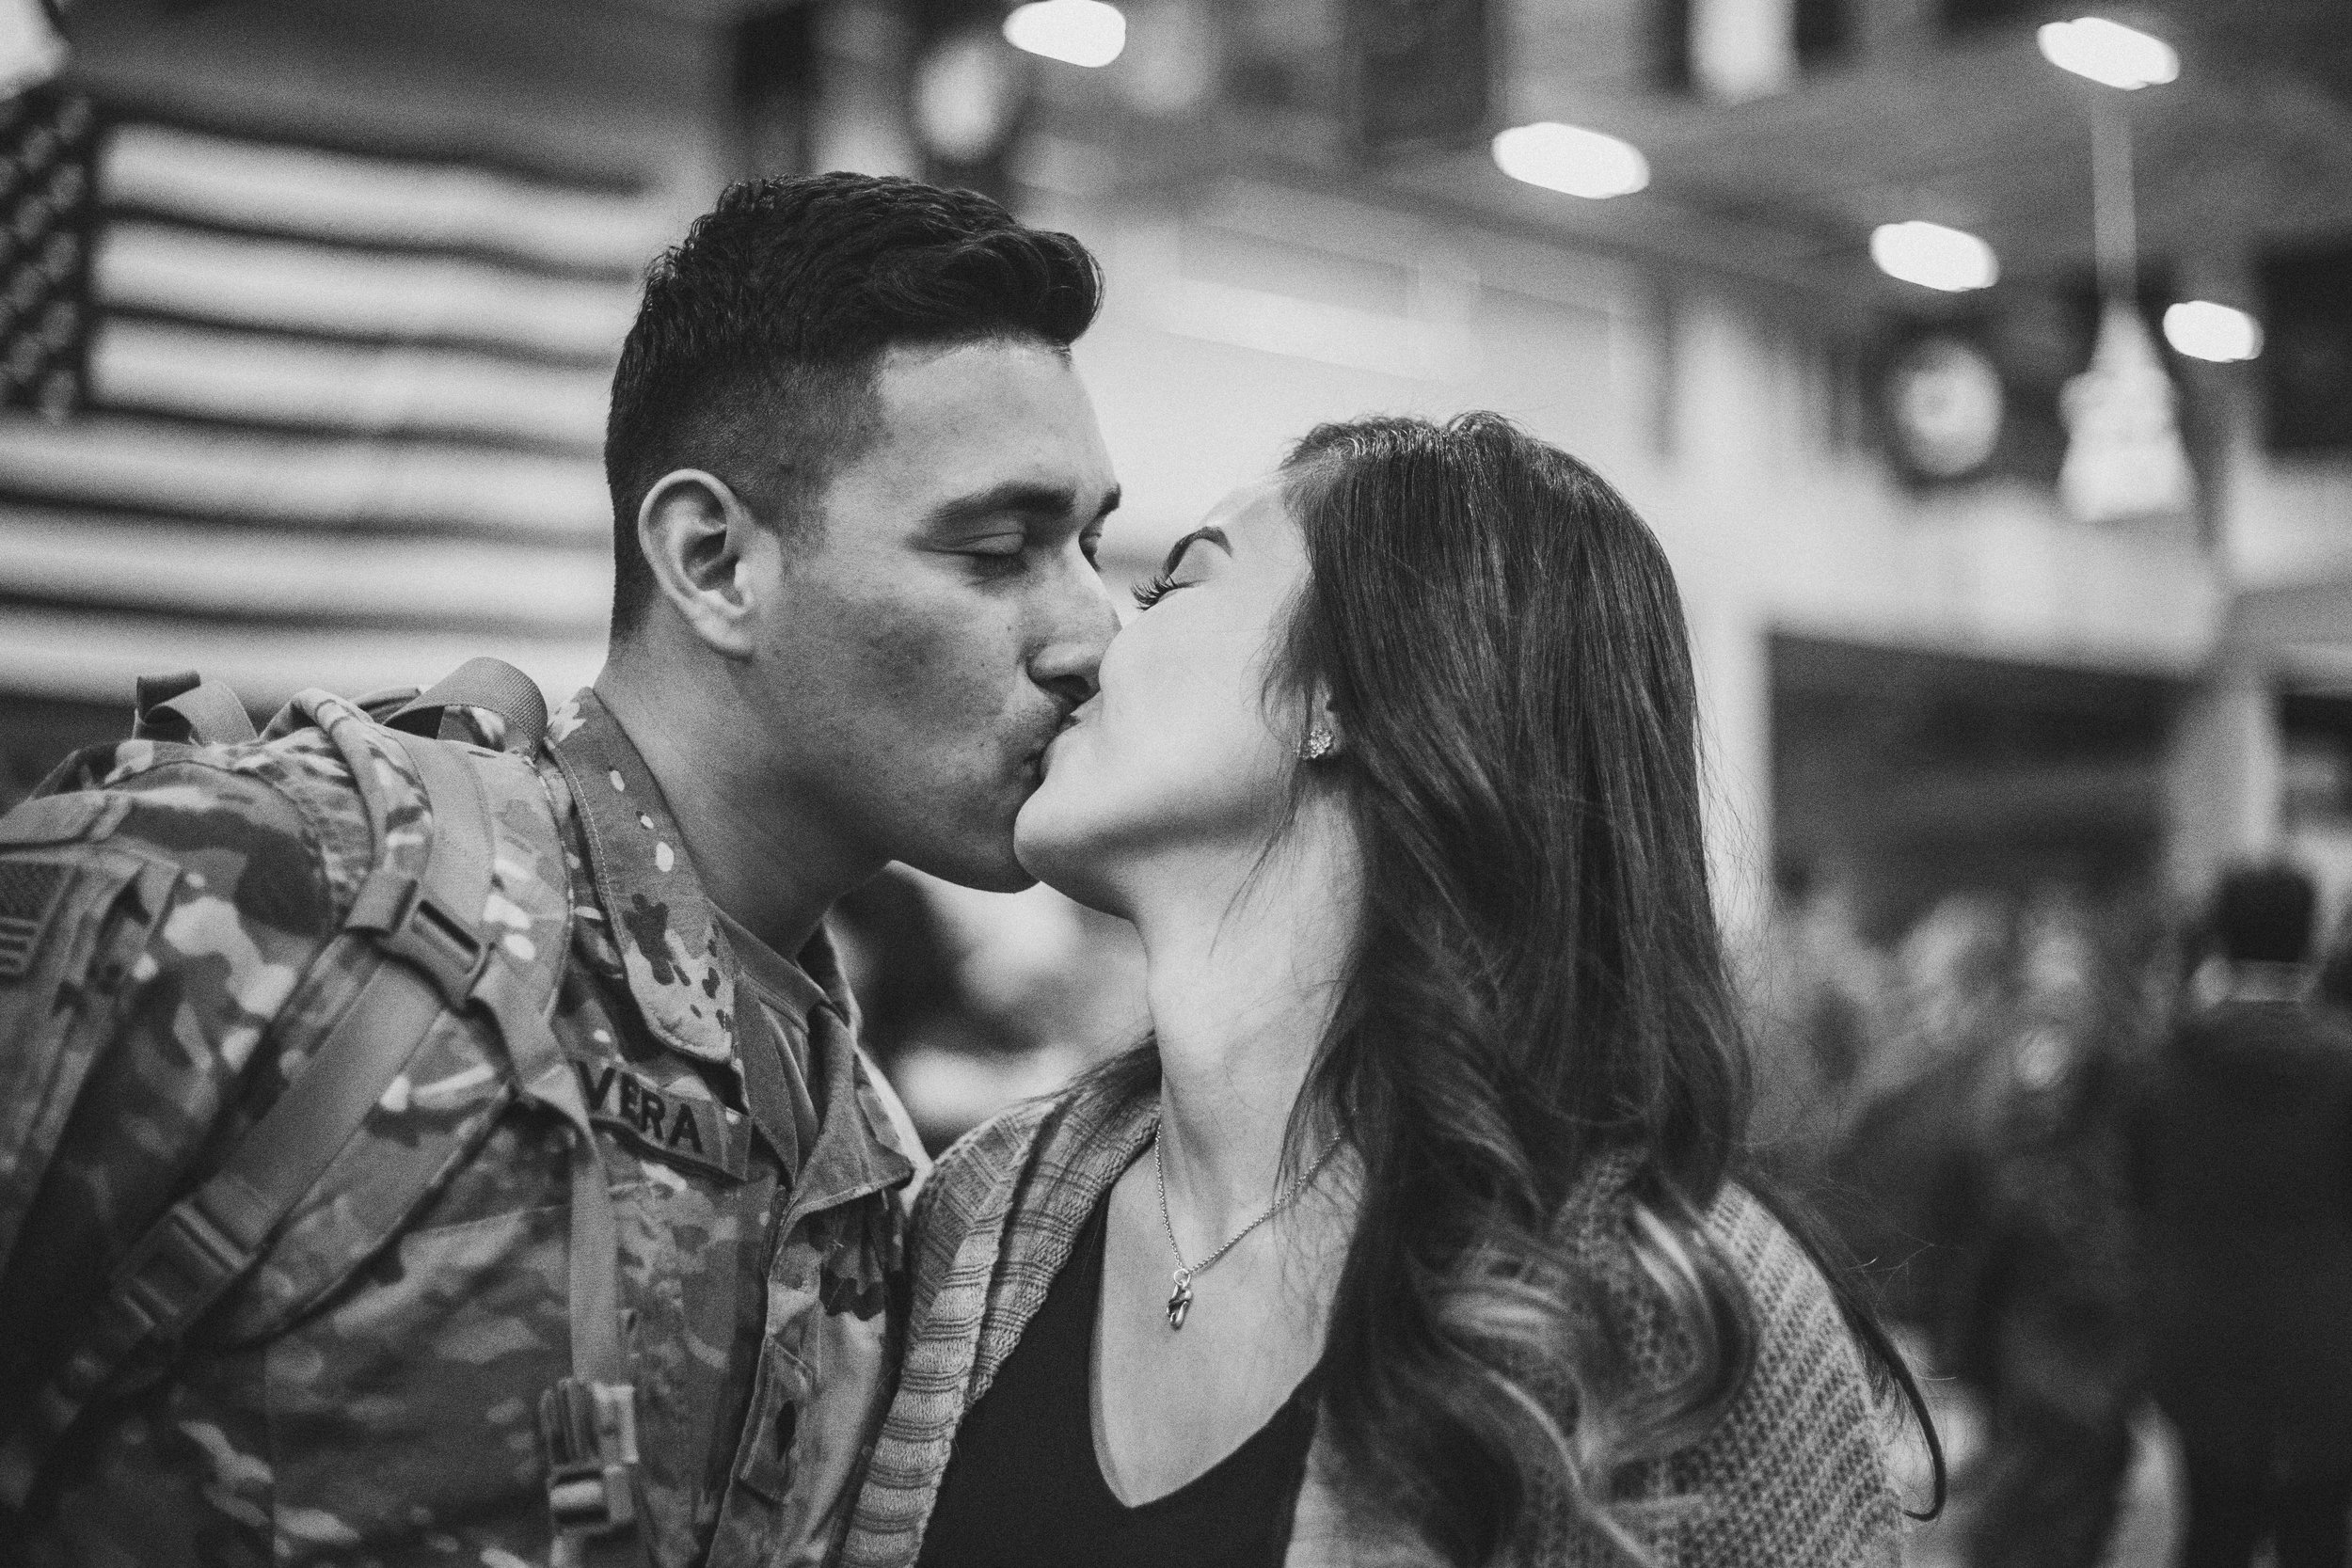 Couple reunites for homecoming in Fort Benning, GA after husband's nine month deployment in Afghanistan